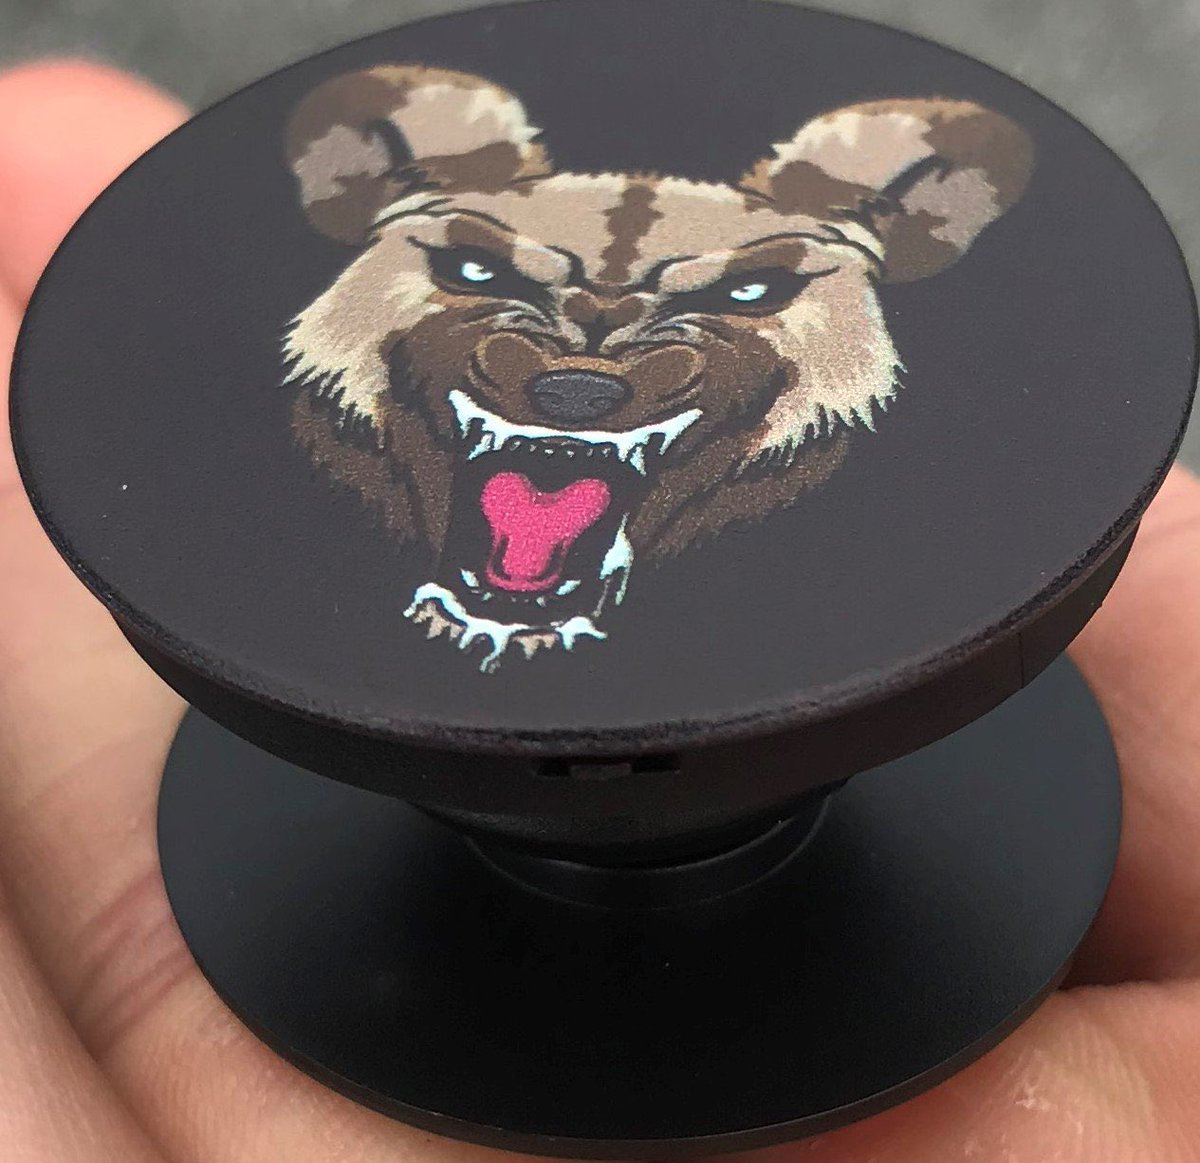 🚨New Accessories PopSockets & Metal Wild Dog Necklaces 🚨